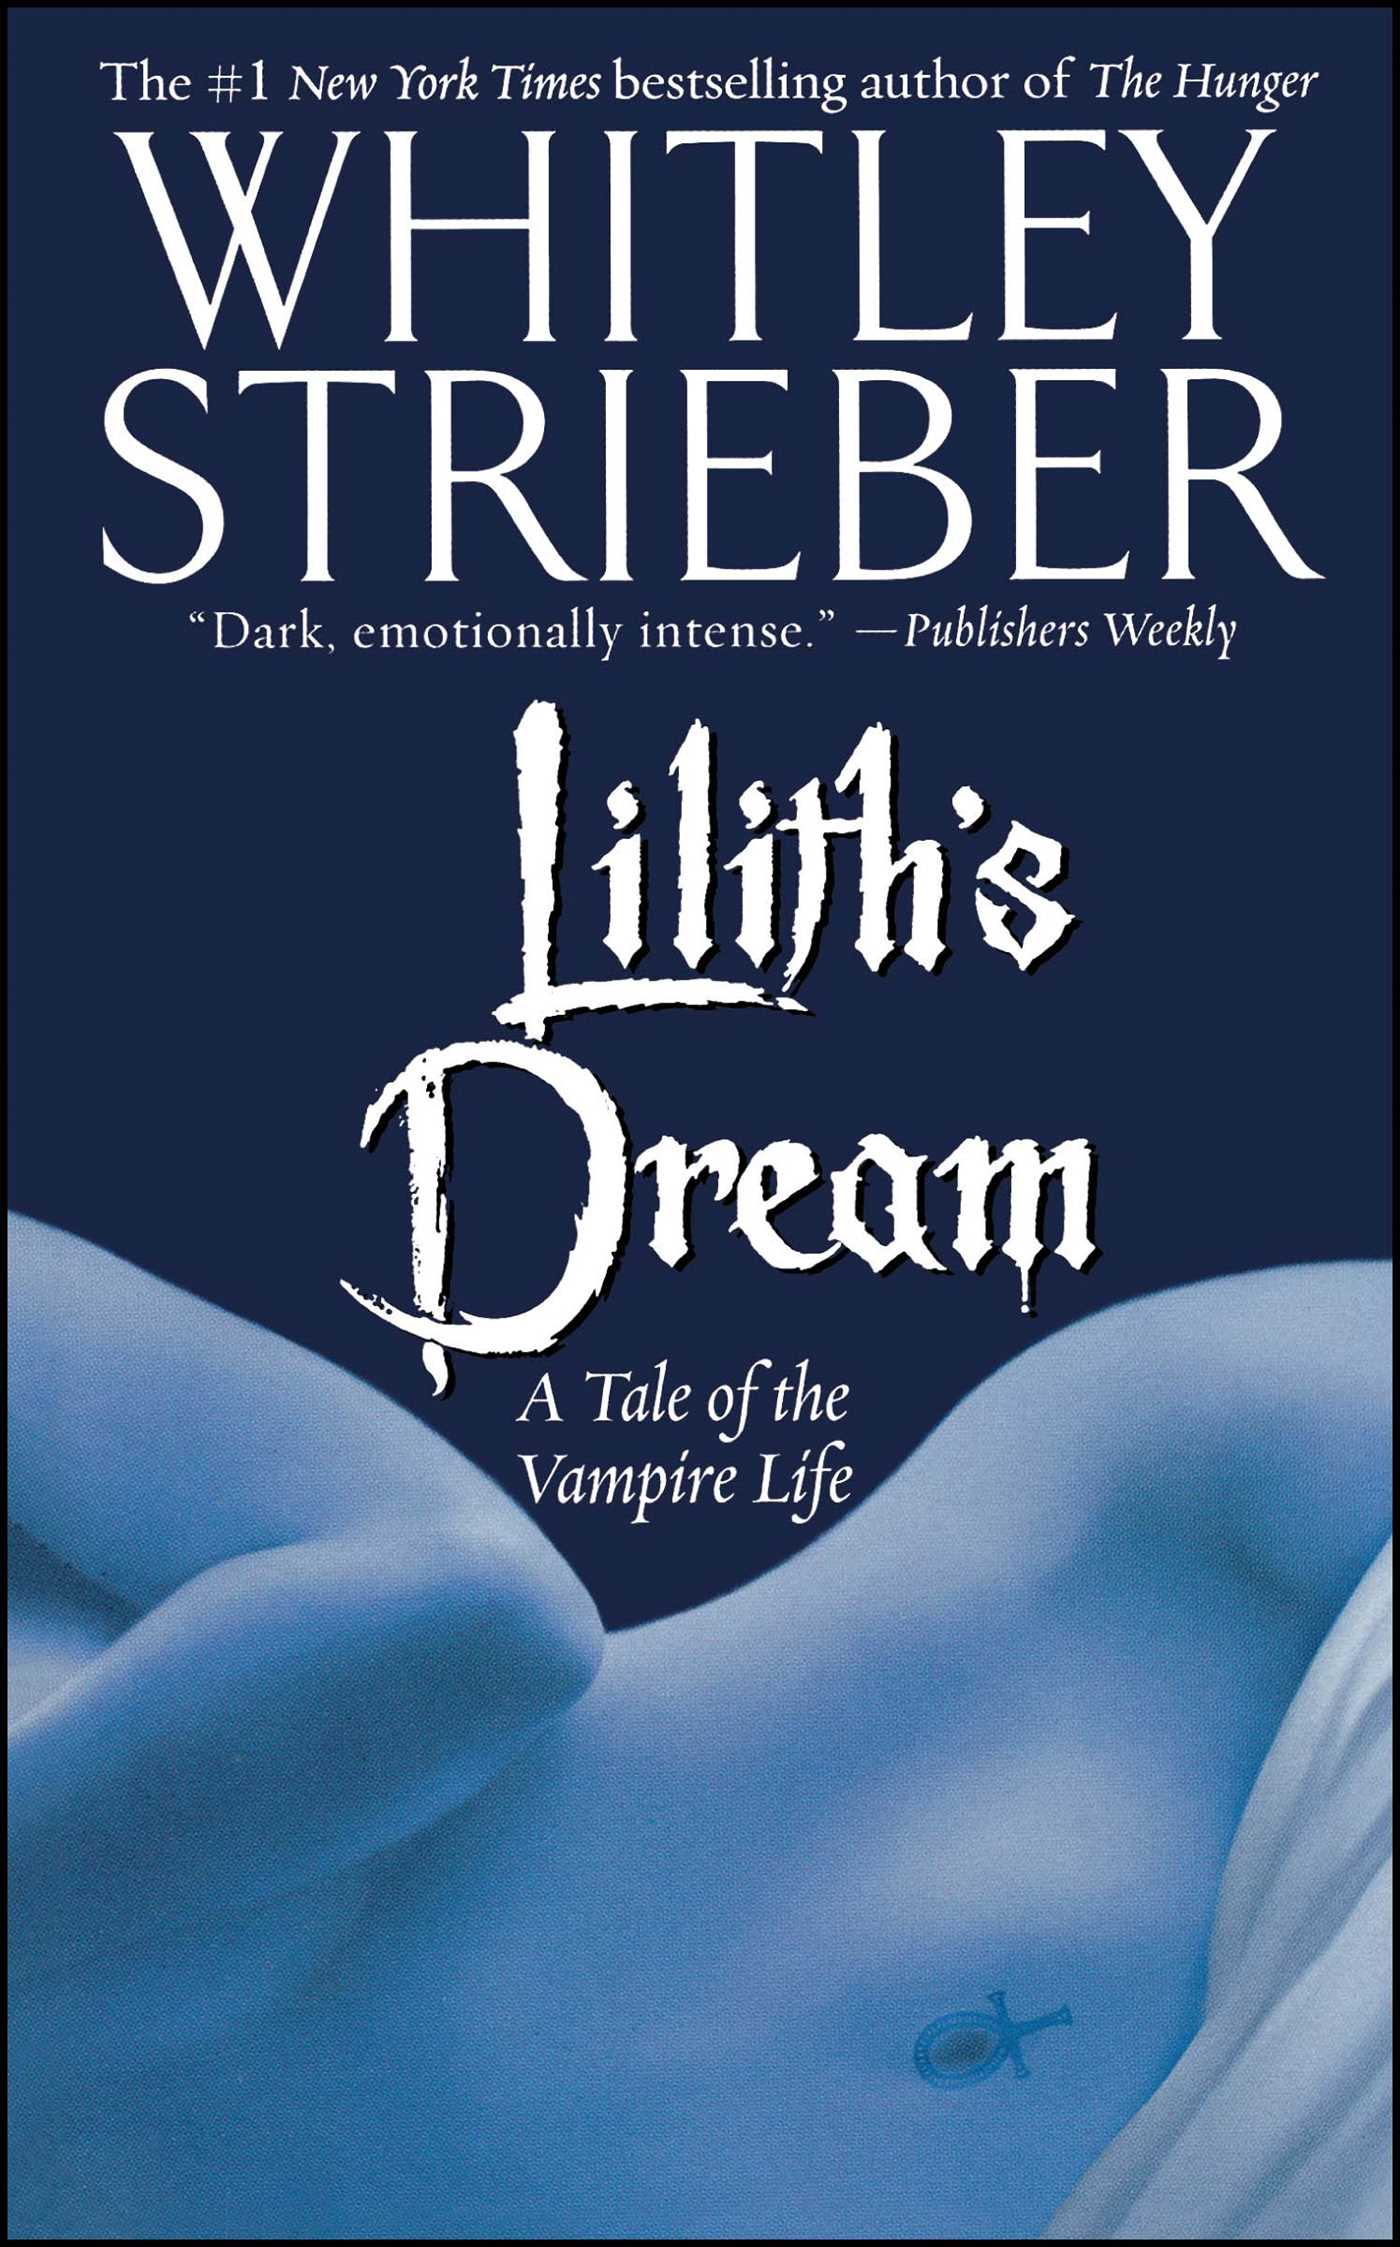 Liliths dream 9781451613315 hr